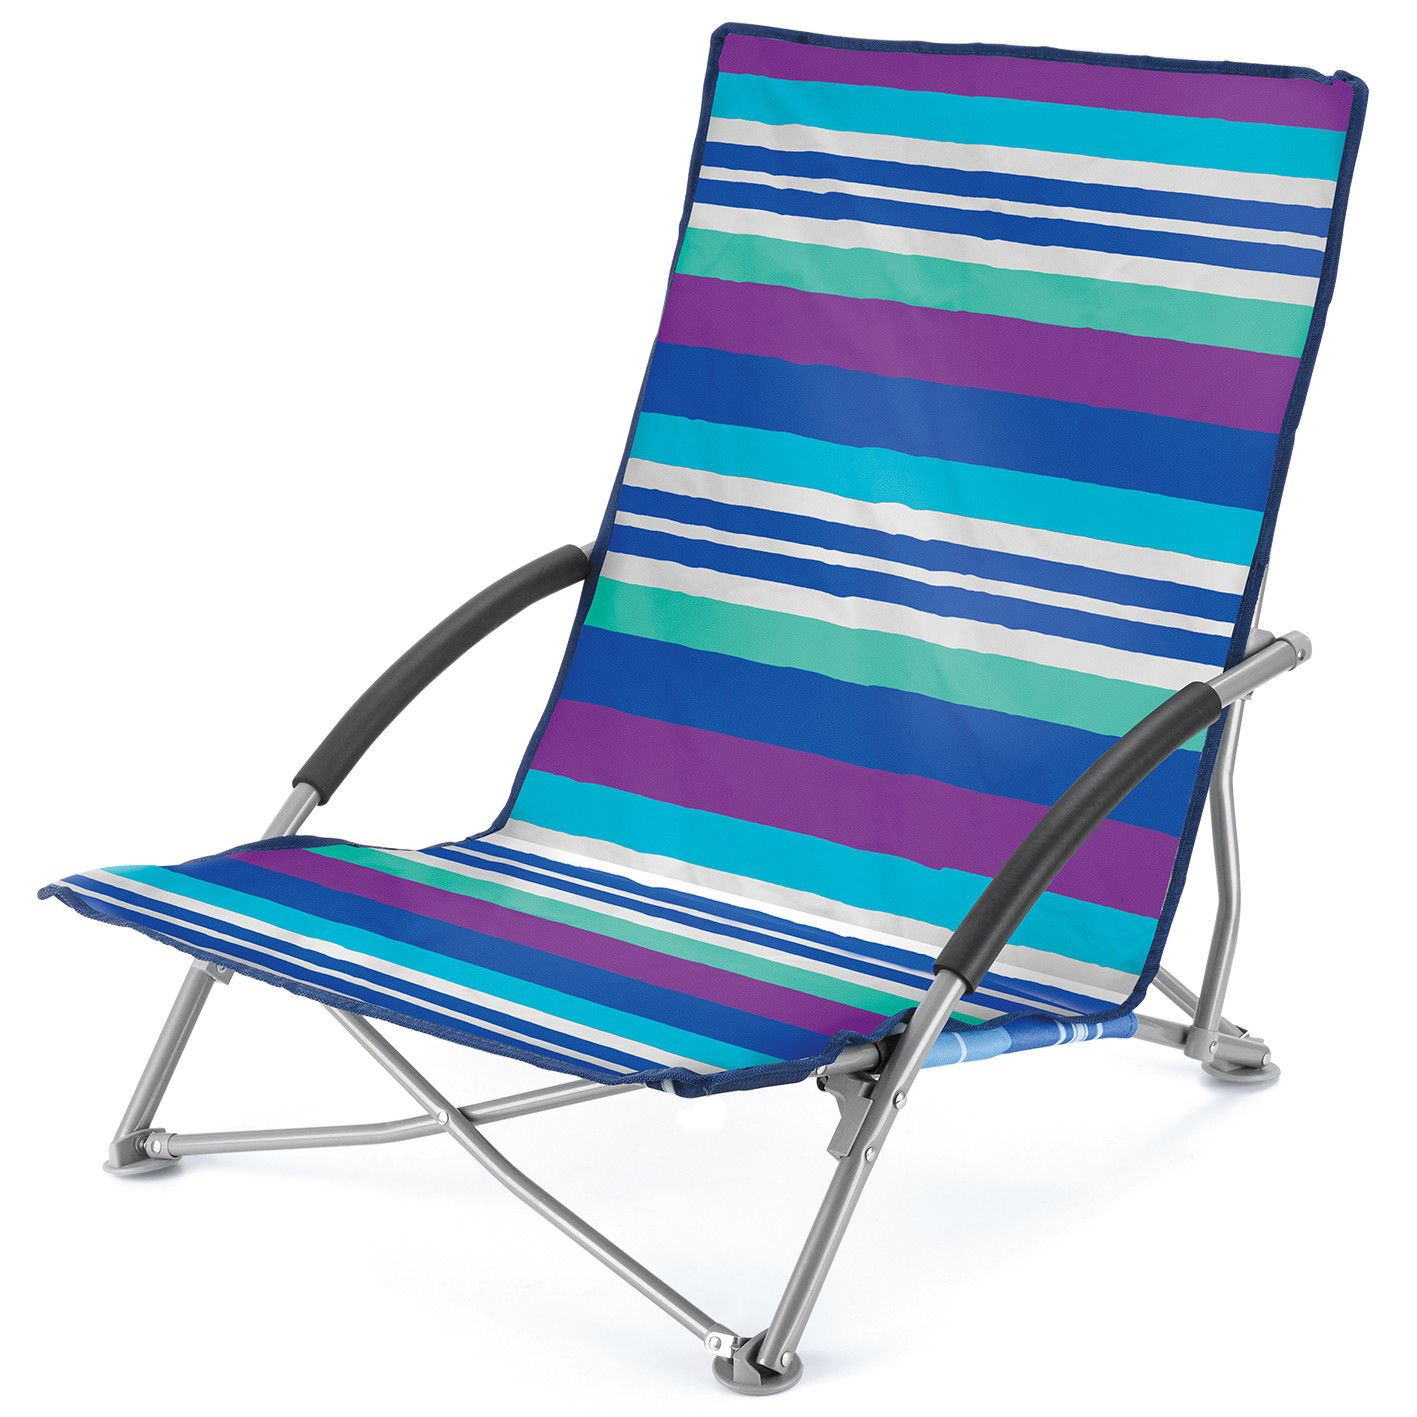 Portable Beach Chair Details About Low Folding Beach Chair Lightweight Portable Outdoor Camping Chairs With Bag